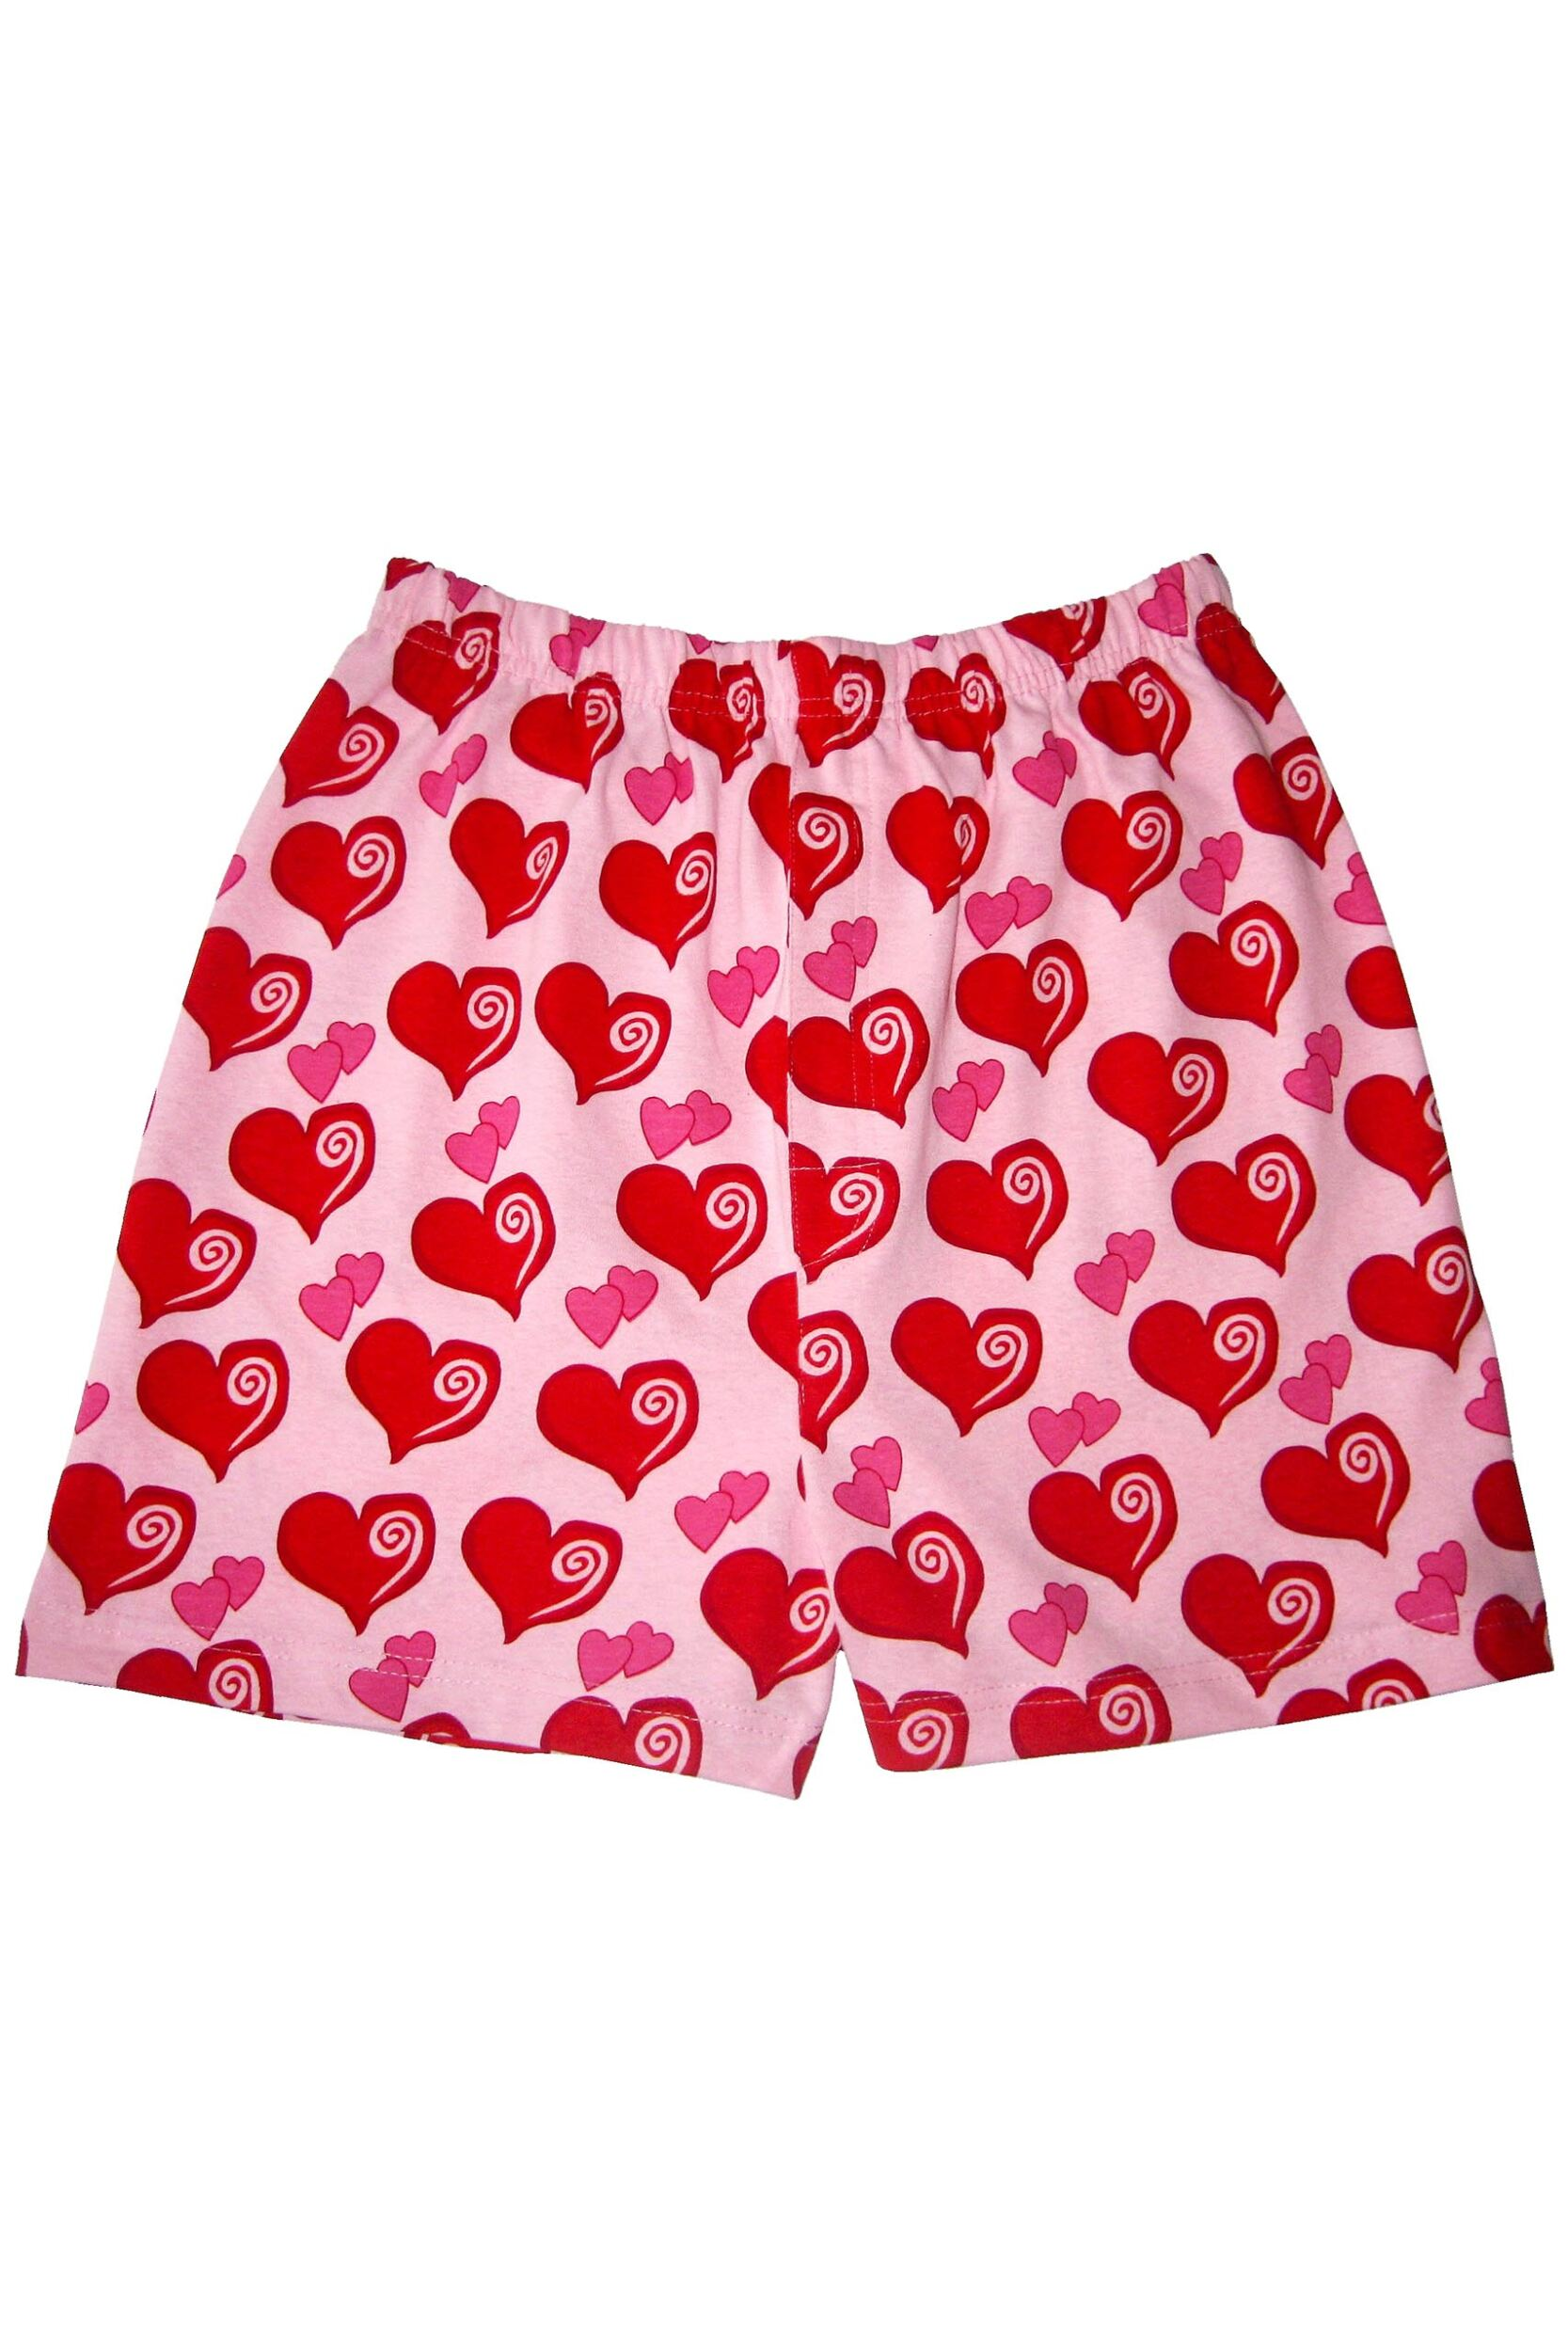 Mens 1 Pair Magic Boxer Shorts In Heart Pattern.